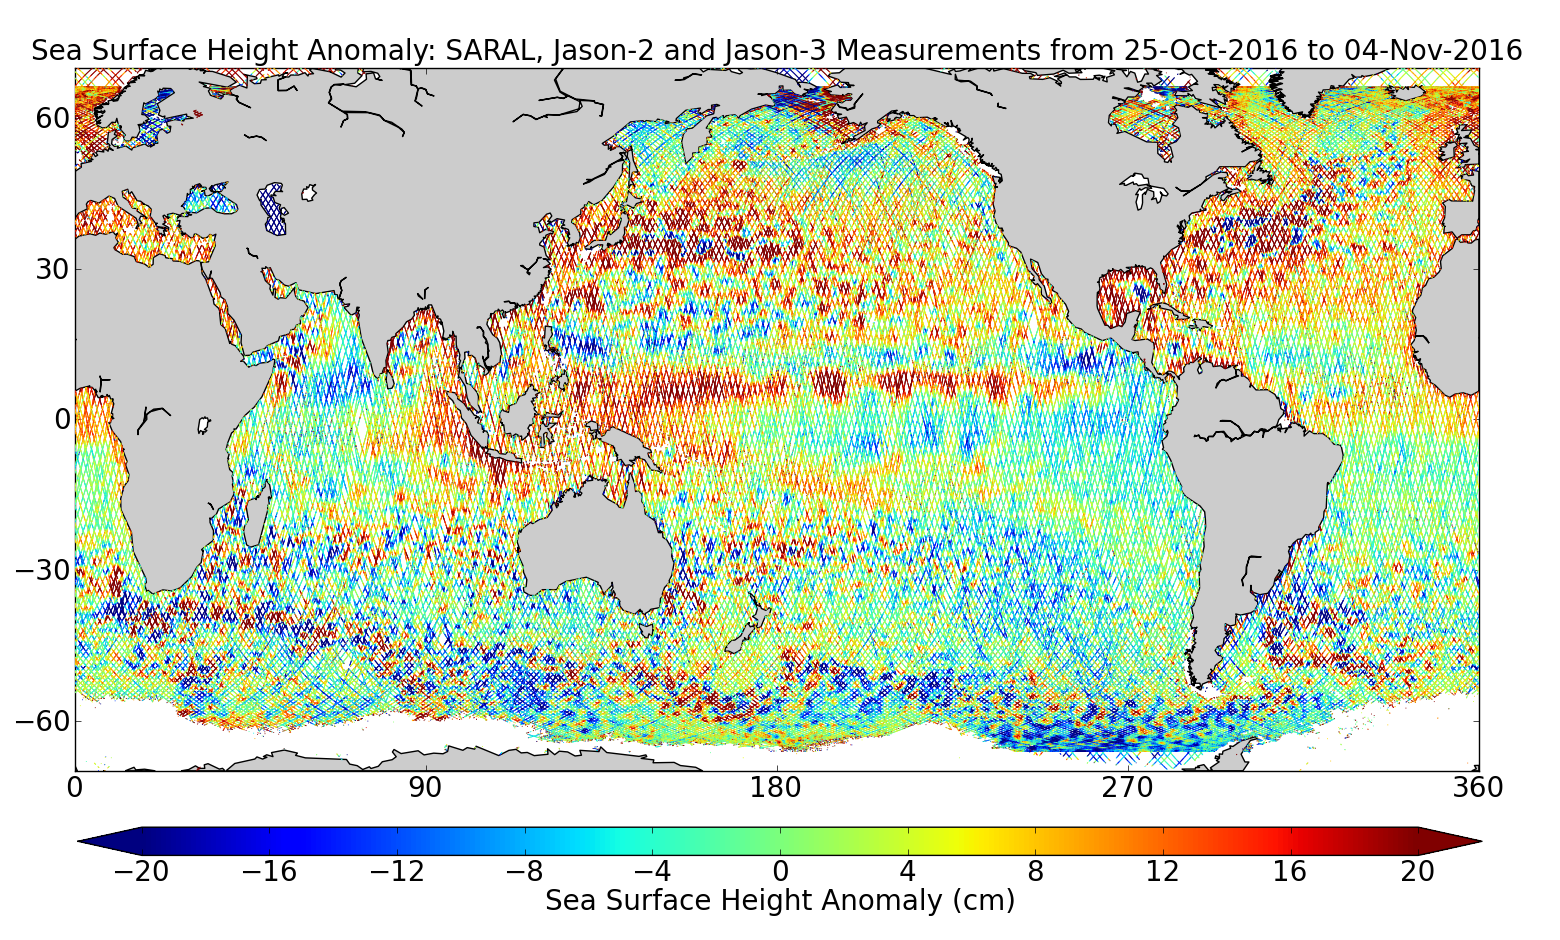 Sea Surface Height Anomaly: SARAL, Jason-2 and Jason-3 Measurements from 25-Oct-2016 to 04-Nov-2016